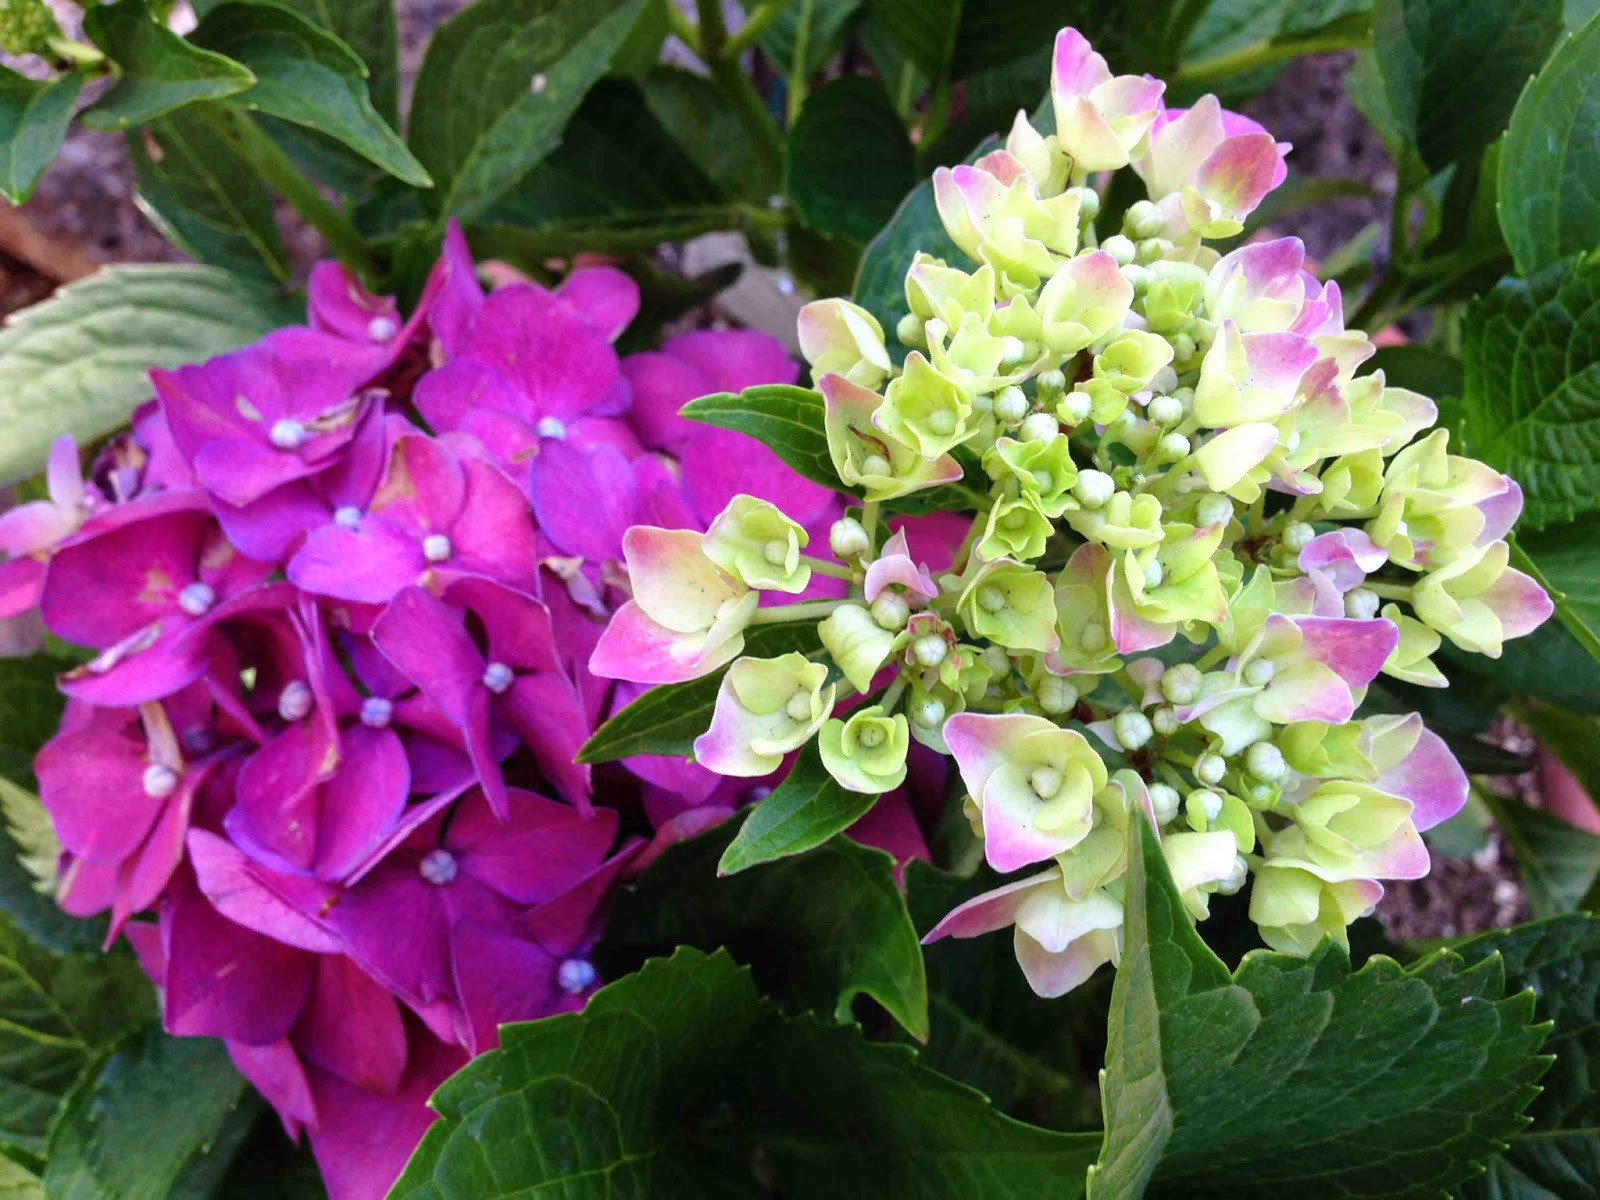 #100HappyDays: Hydrangeas in bloom